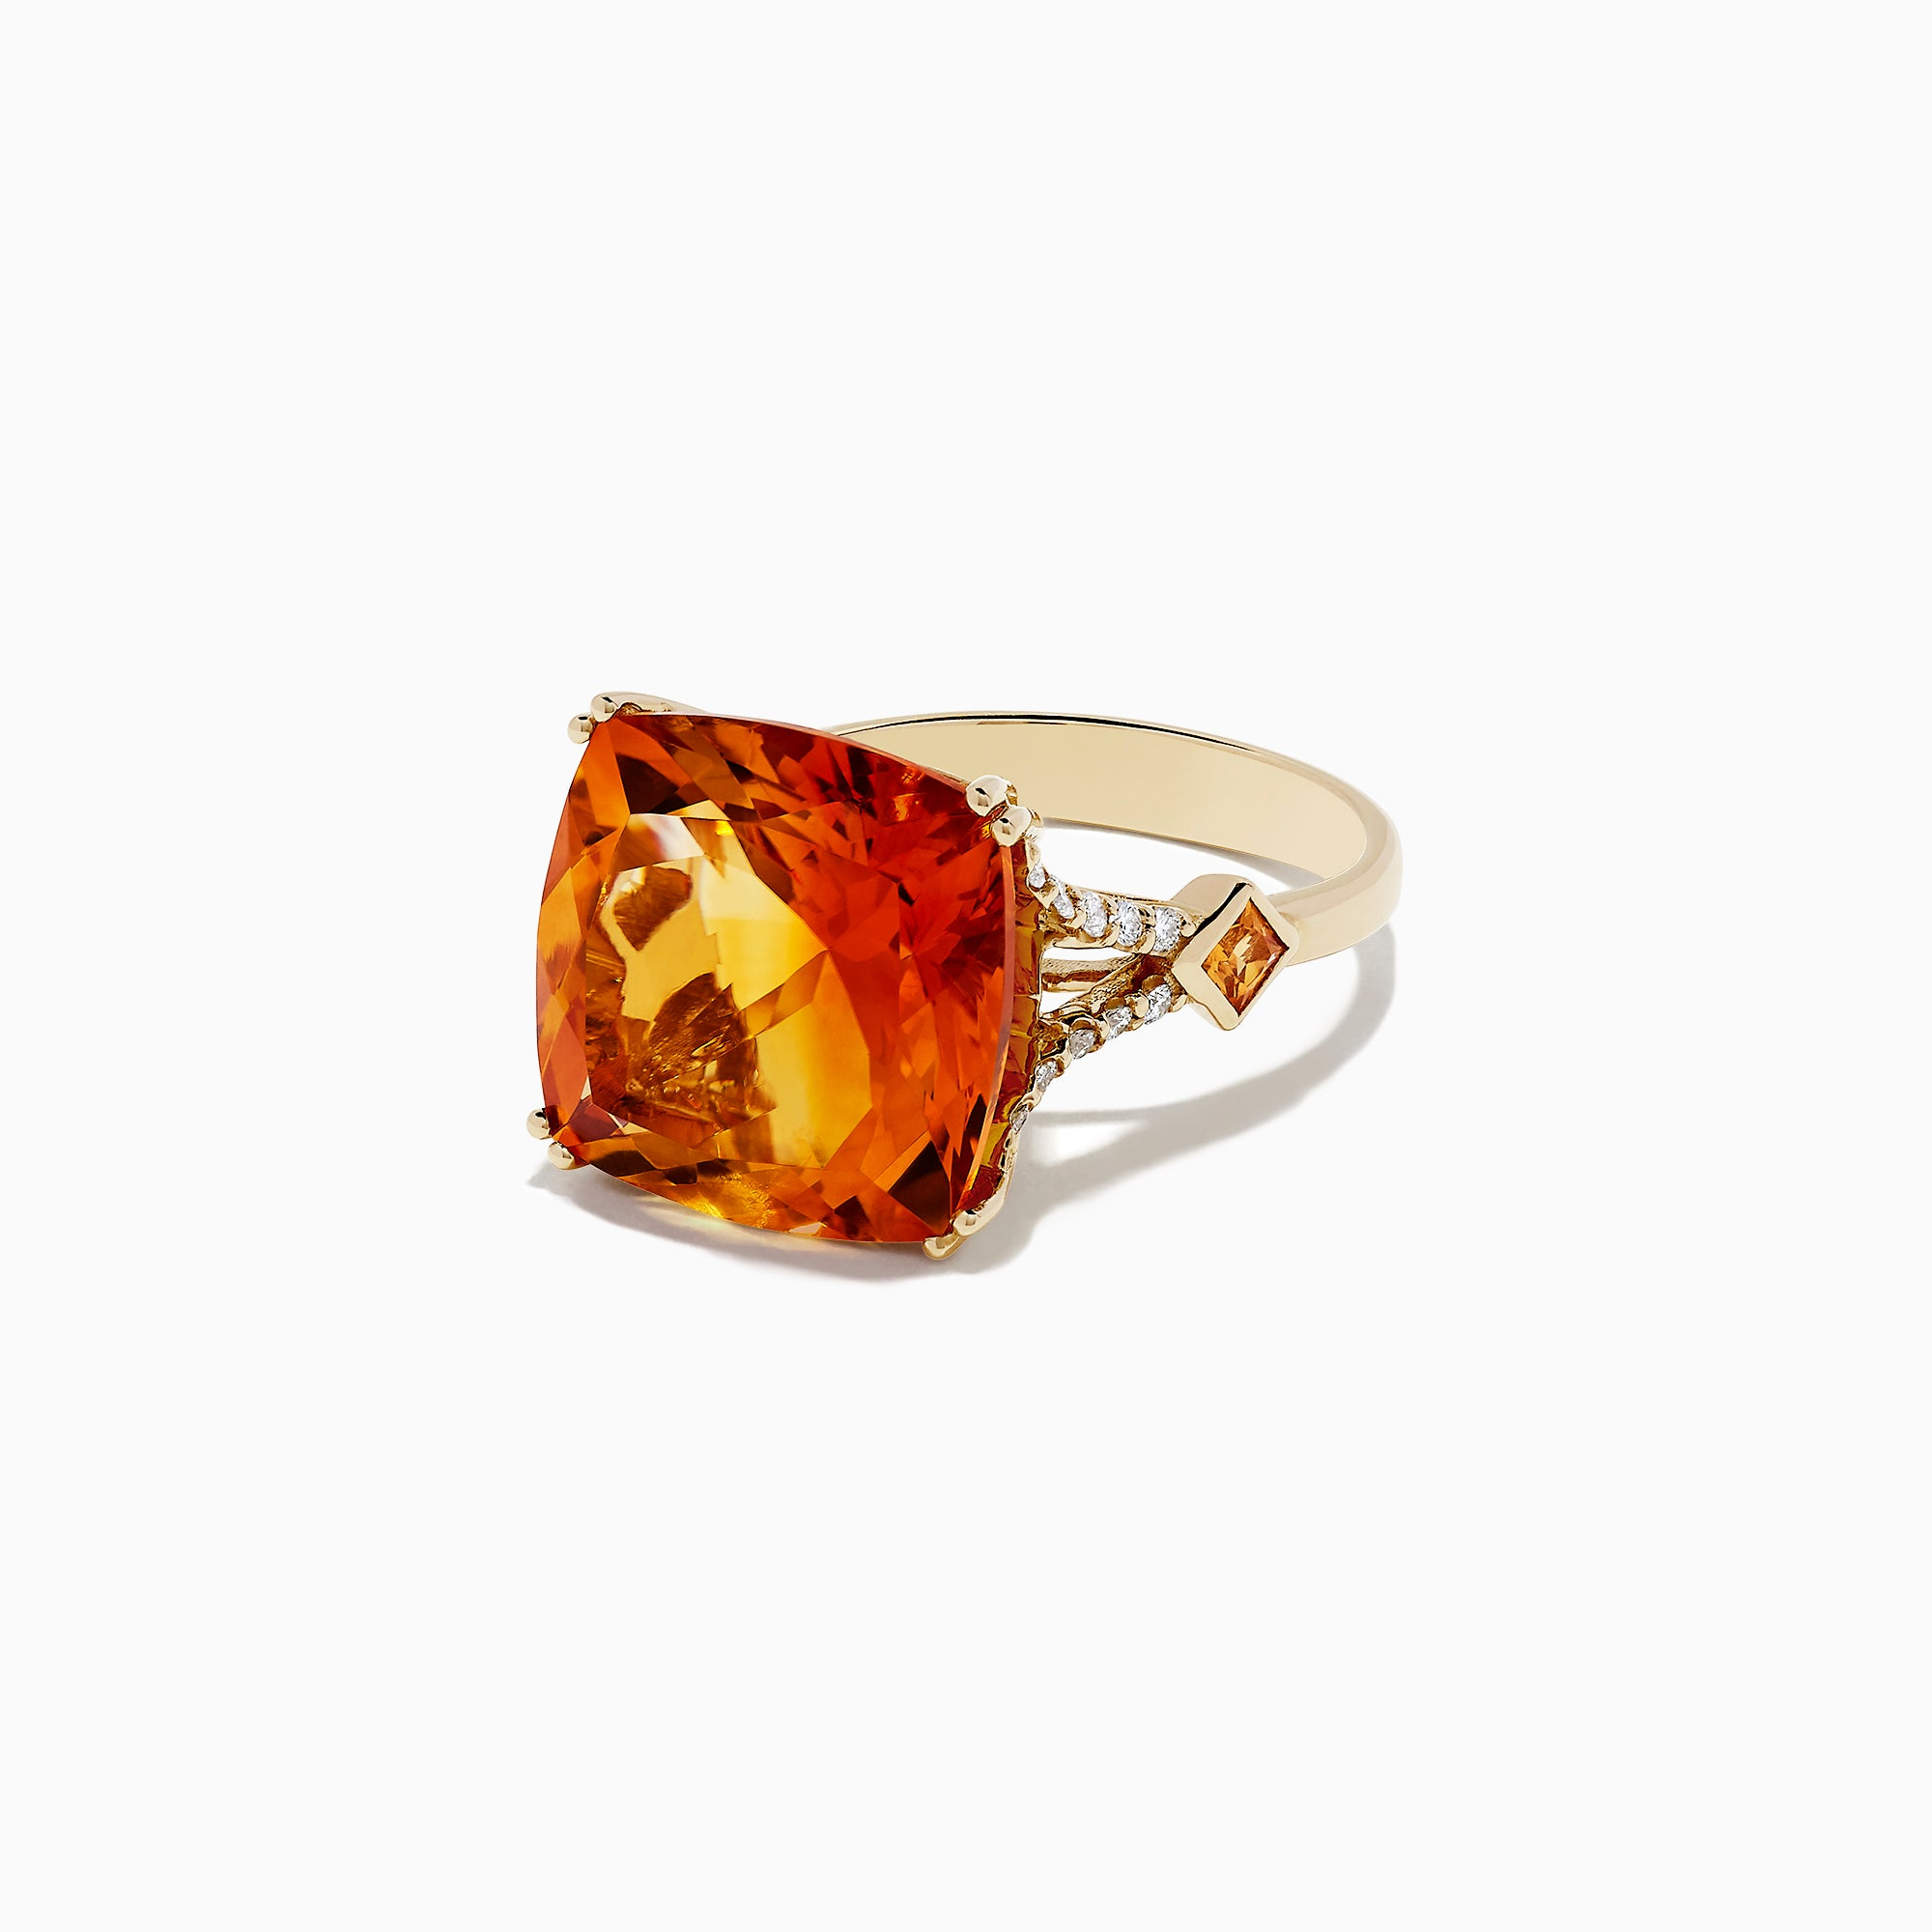 Effy Sunset 14K Yellow Gold Citrine and Diamond Cocktail Ring, 11.04 TCW